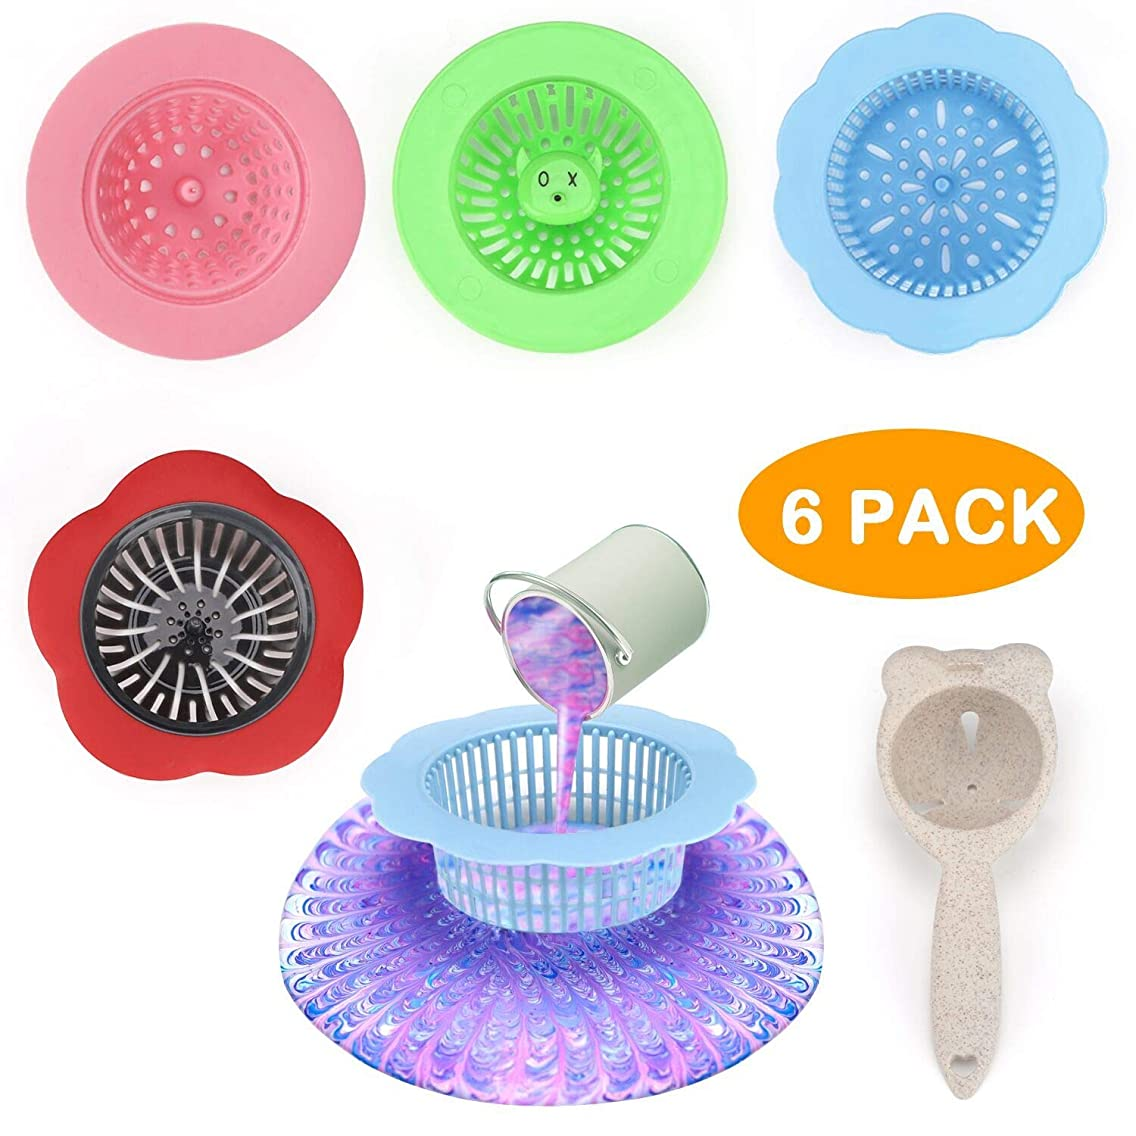 Pouring Painting Strainer Supplies Silicone Pour Paint Strainer Acrylic Unique Patters and Designs for Creating, 6 Pieces